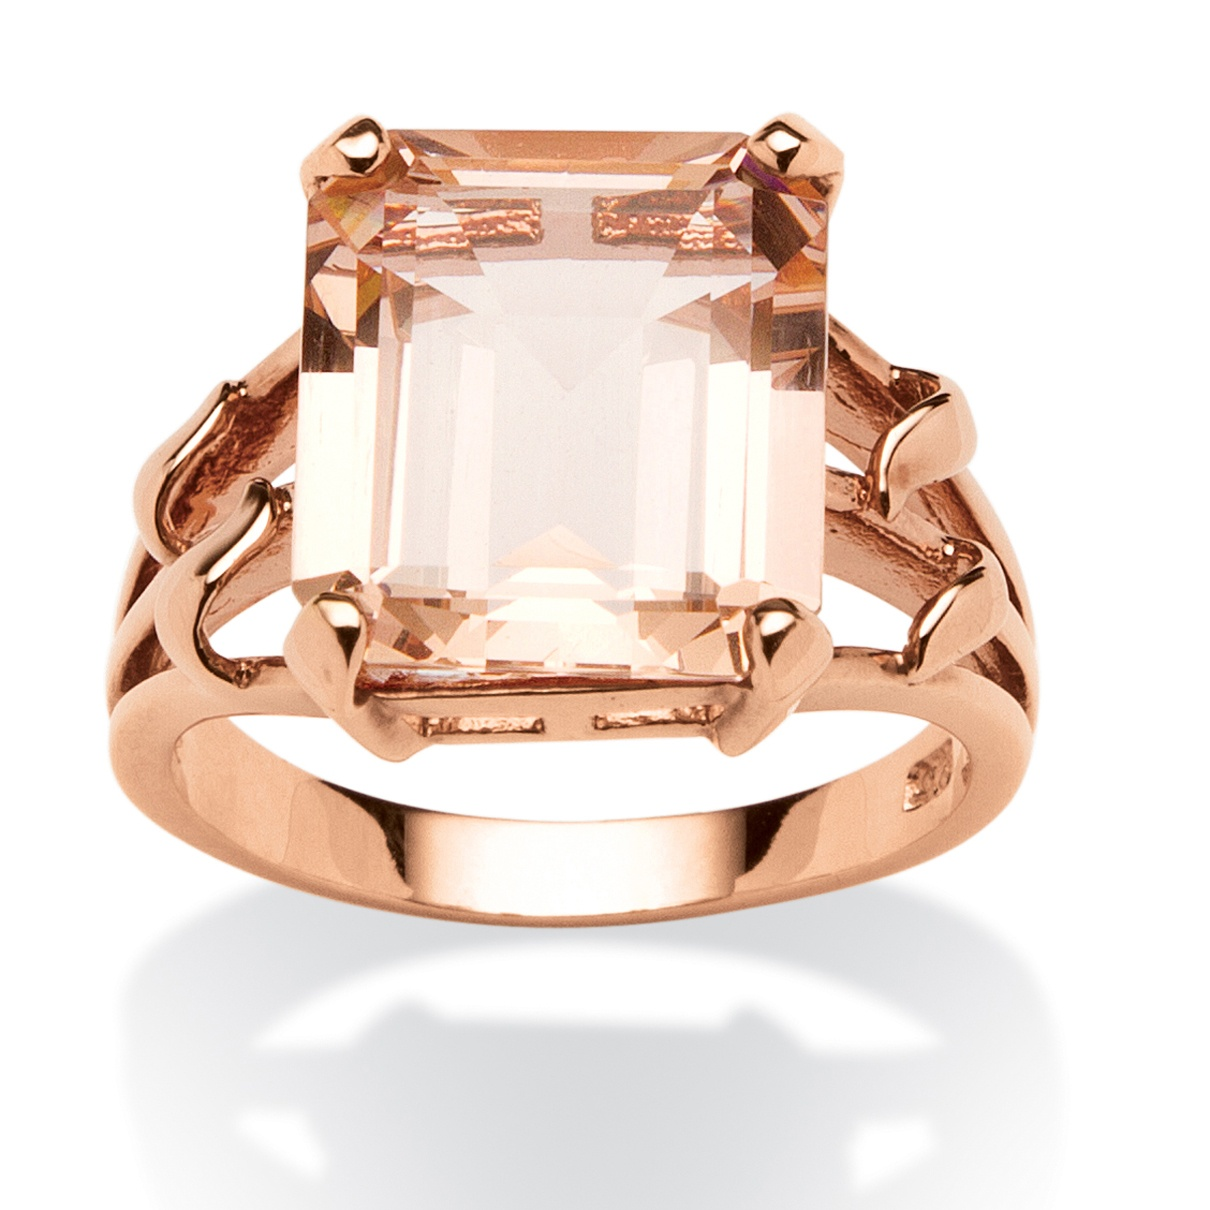 Well known Emerald-Cut Simulated Morganite Ring in 18k Rose Gold over .925  JR14